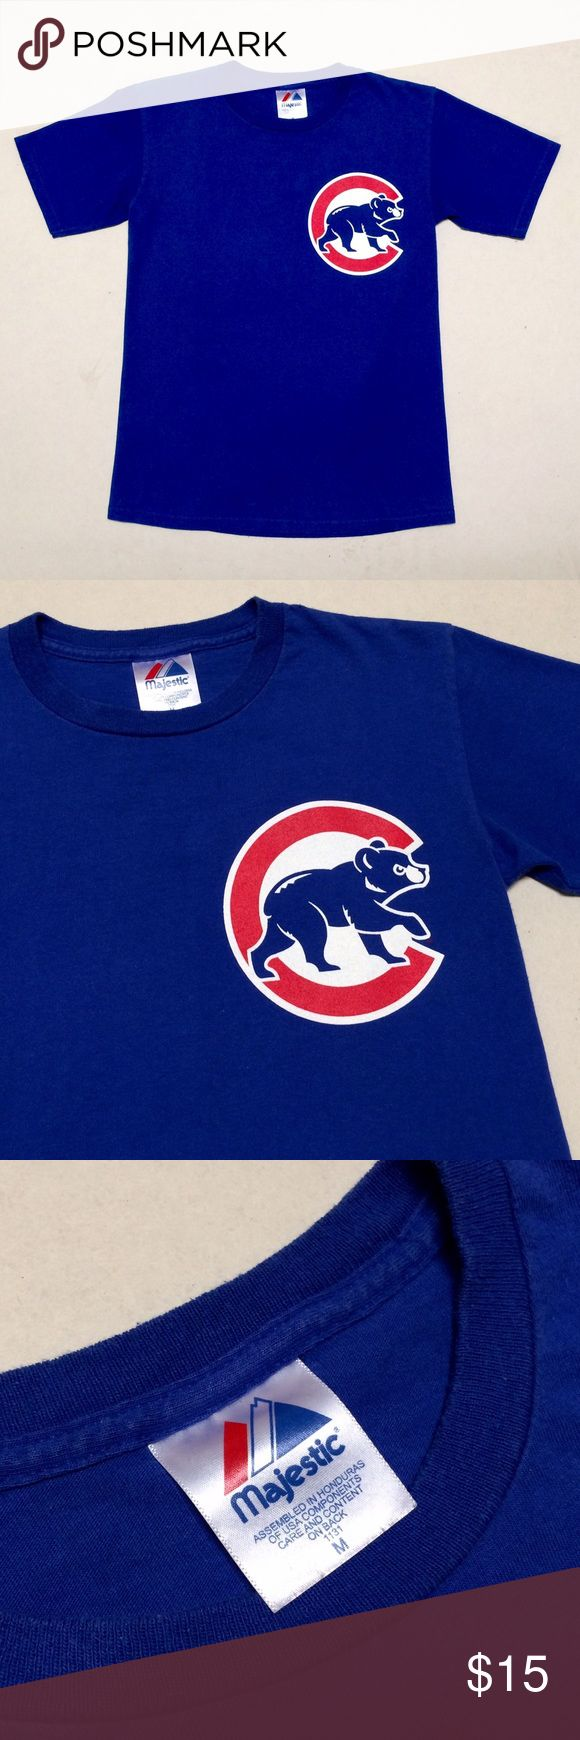 Chicago Cubs T-shirt  🐻 Chicago Cubs  ⚾️ Boys T-shirt   Size Boys Medium  Fits Women's Small   All-time great Derrek Lee #25  🐻  Lightly worn but excellent condition! Majestic Shirts & Tops Tees - Short Sleeve